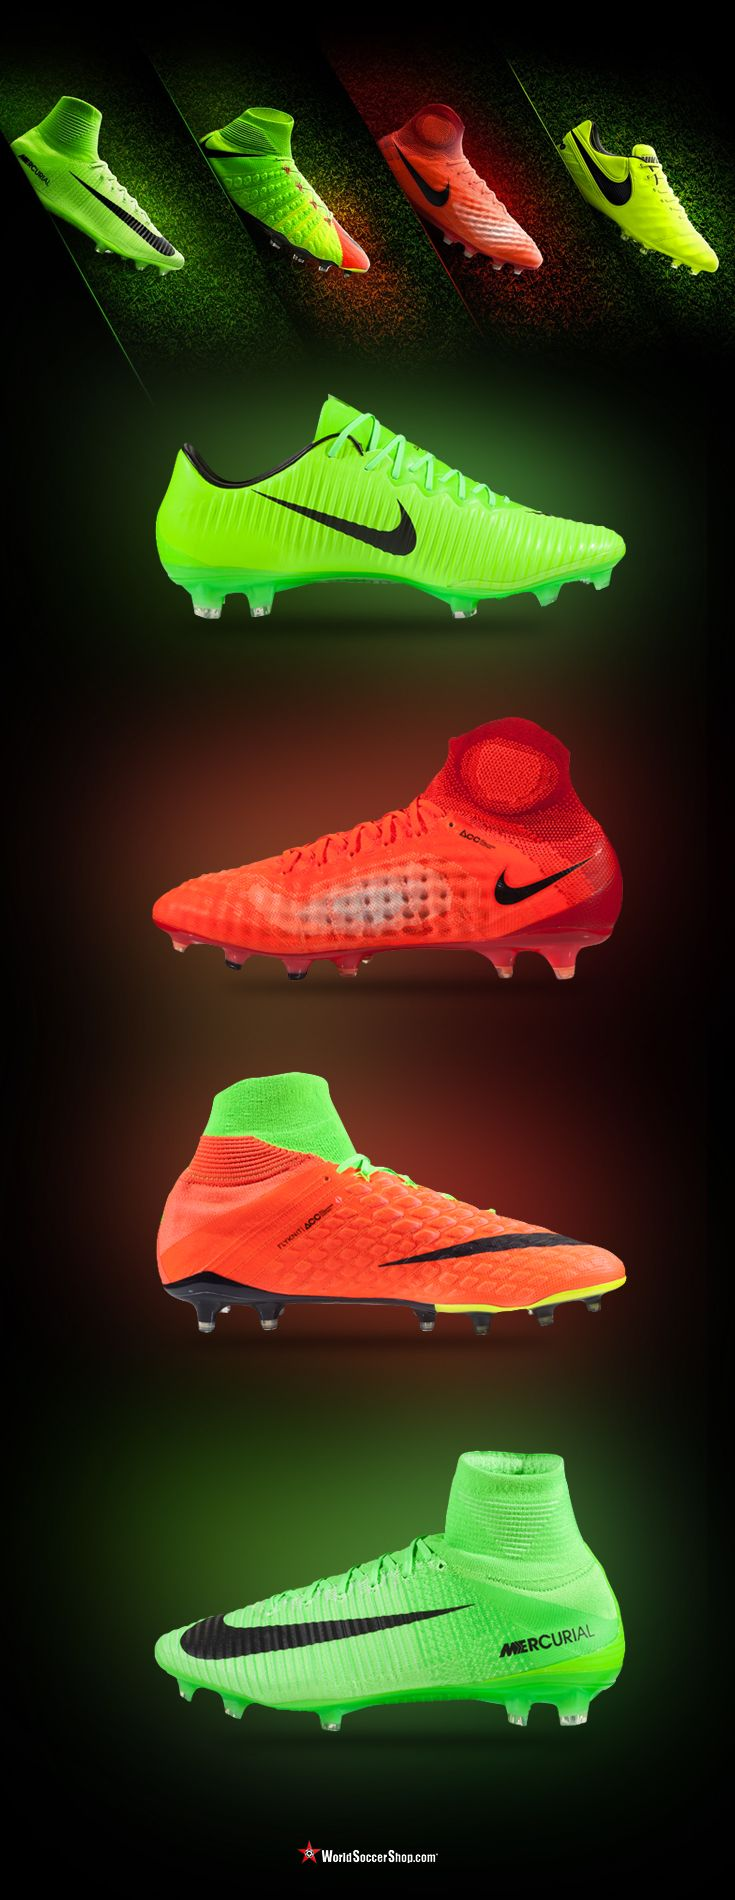 New Nike Radiation Flare Pack The Second Half Of The Season Is Here And Nike Soccer Has Revea Soccer Cleats Nike Soccer Shoes Nike Football Boots